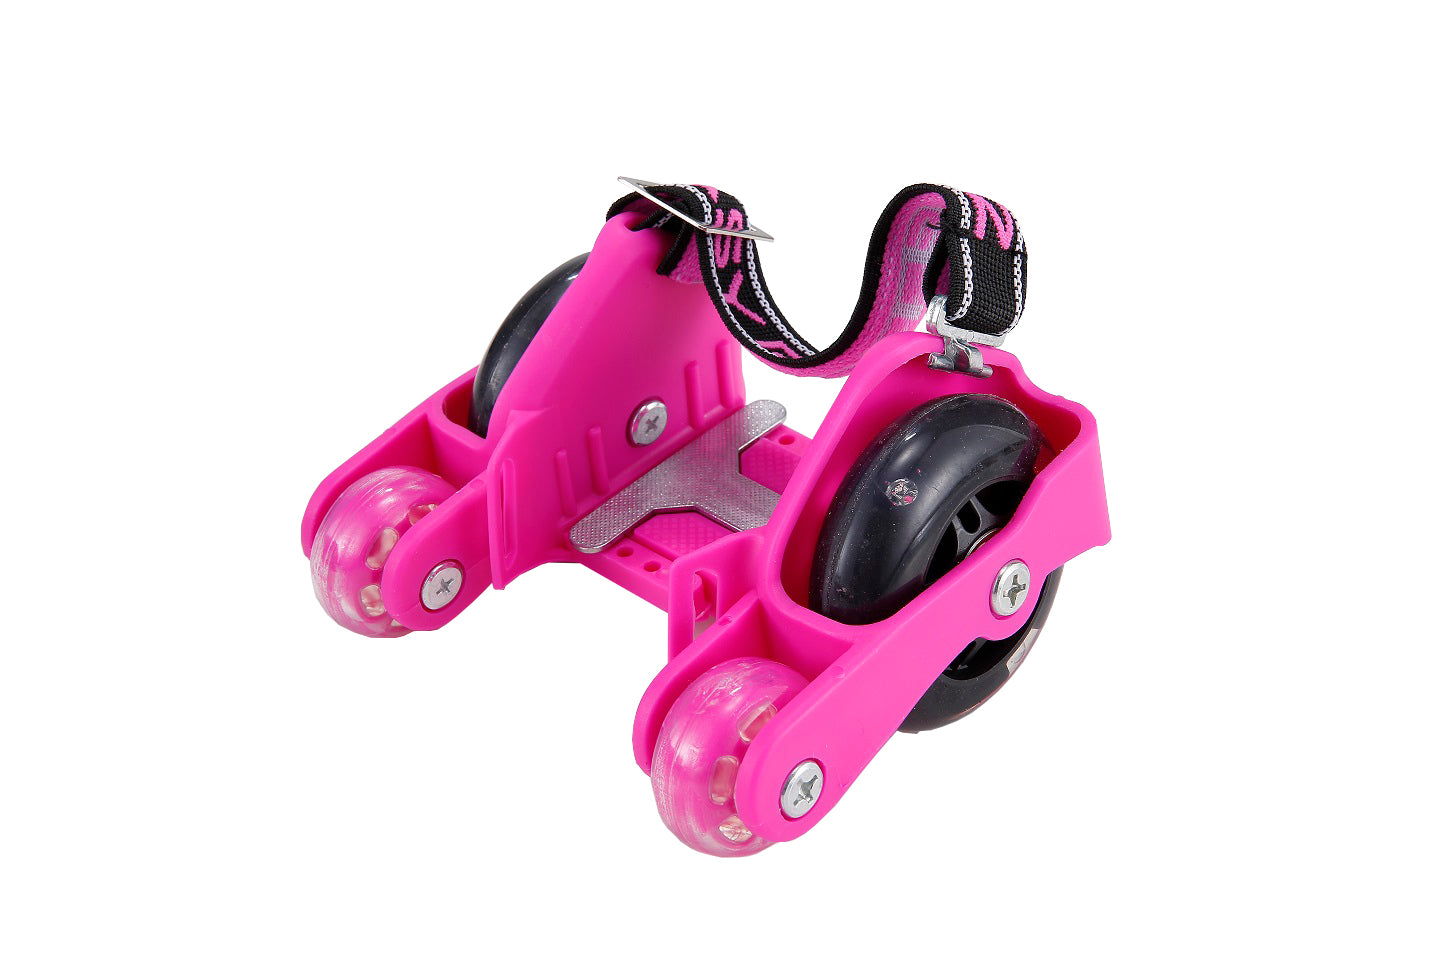 Four Wheel Easy Rollerz (Pink) Gen 2